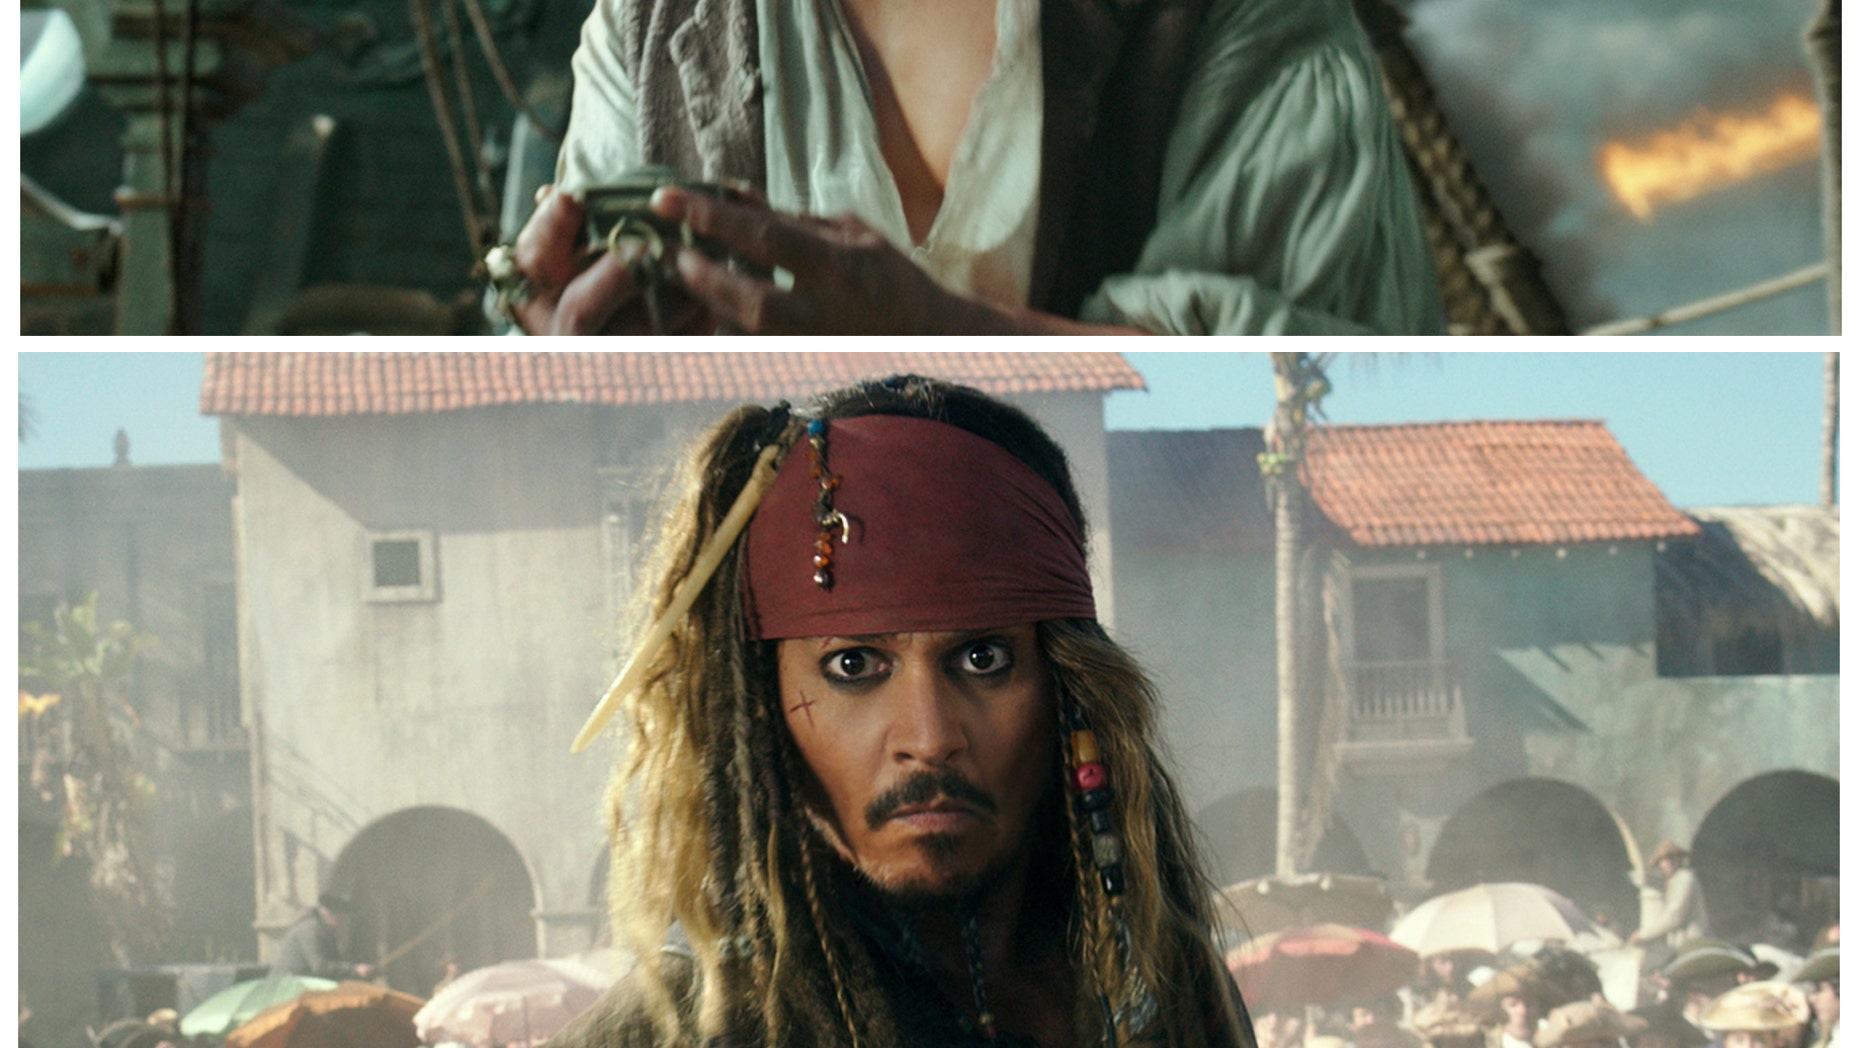 """This combination of photos released by Disney, shows the character Jack Sparrow at two stages of his life in """"Pirates of the Caribbean: Dead Men Tell No Tales.""""  Johnny Depp, who portrays the character, is the latest mega-star to get the drastic de-aging treatment on screen. Lola Visual Effects first captured a performance from the actual actor and then manipulated it. It went through a number of iterations, over the course of six months, to arrive at the perfect age. The final shots, of which there are about 20-25, took about 15 artists a year of work. (Disney via AP)"""